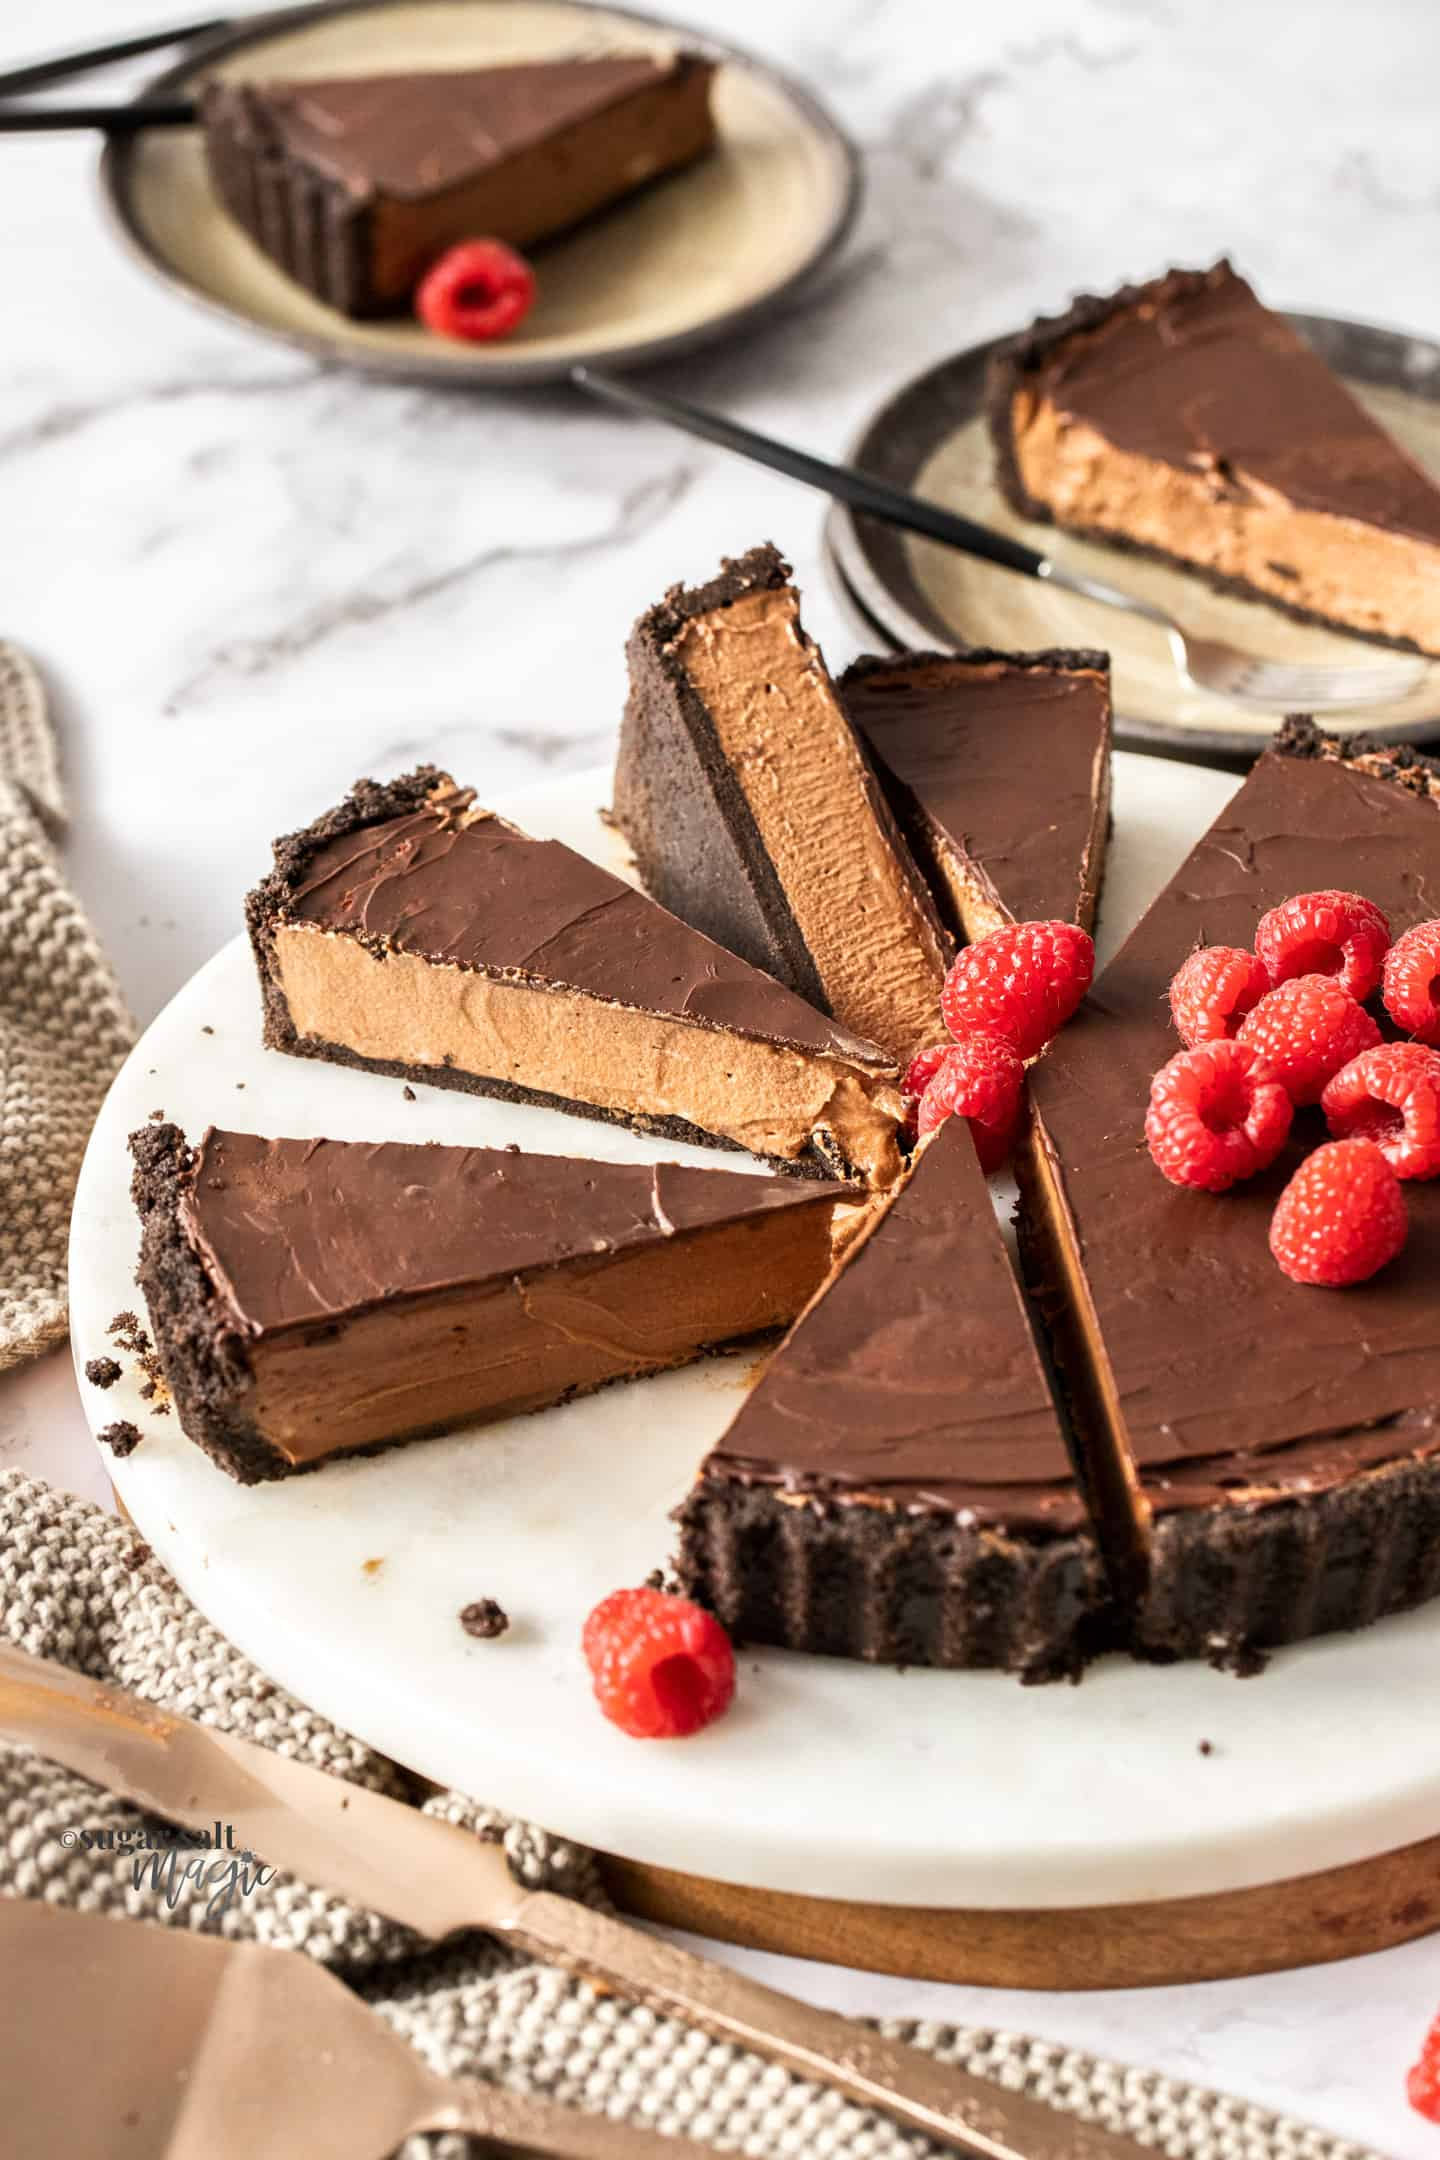 A sliced up chocolate tart topped with raspberries on a white marble platter.